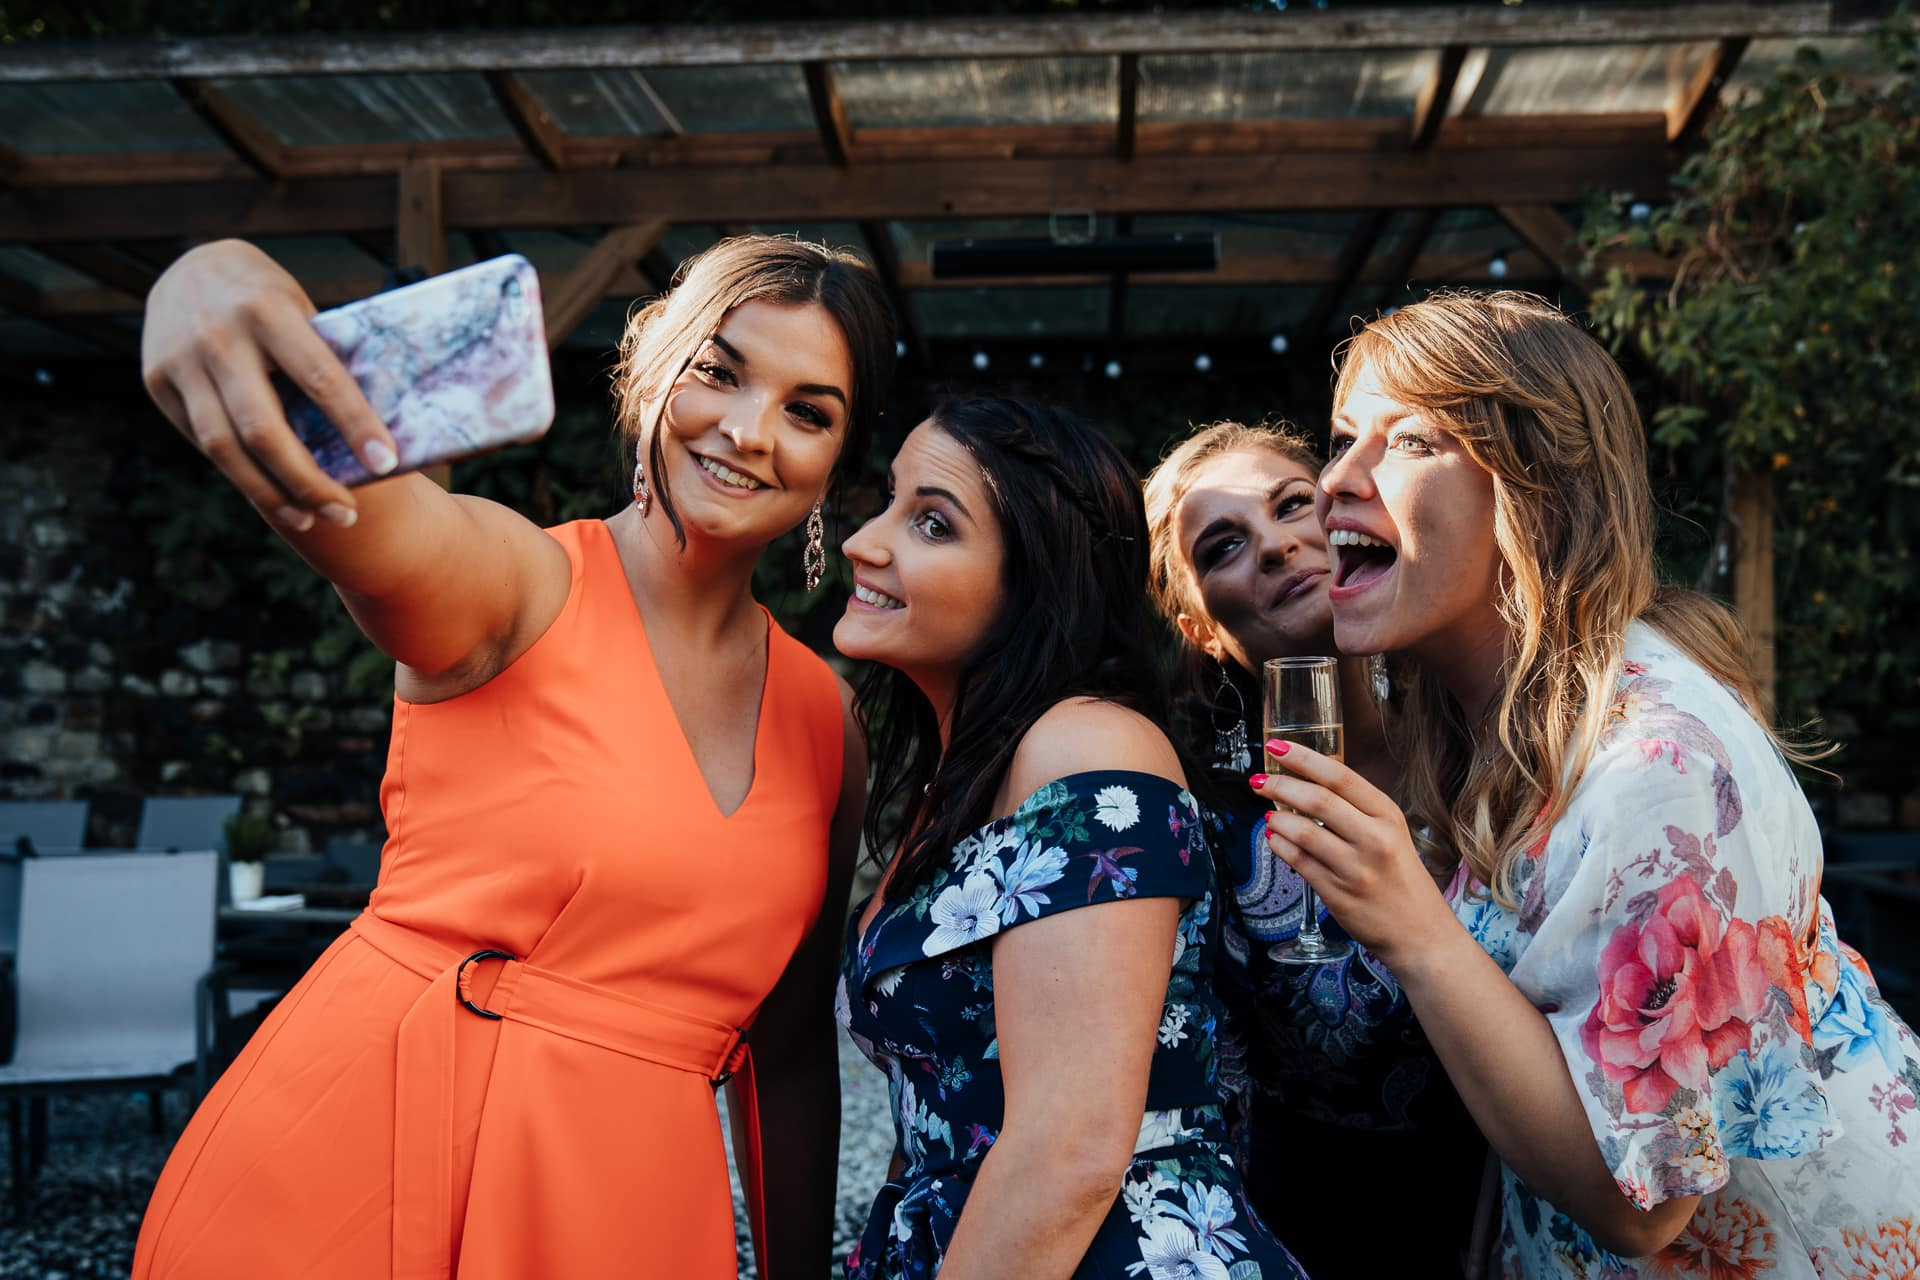 Wedding guests take a selfie with their mobile phone